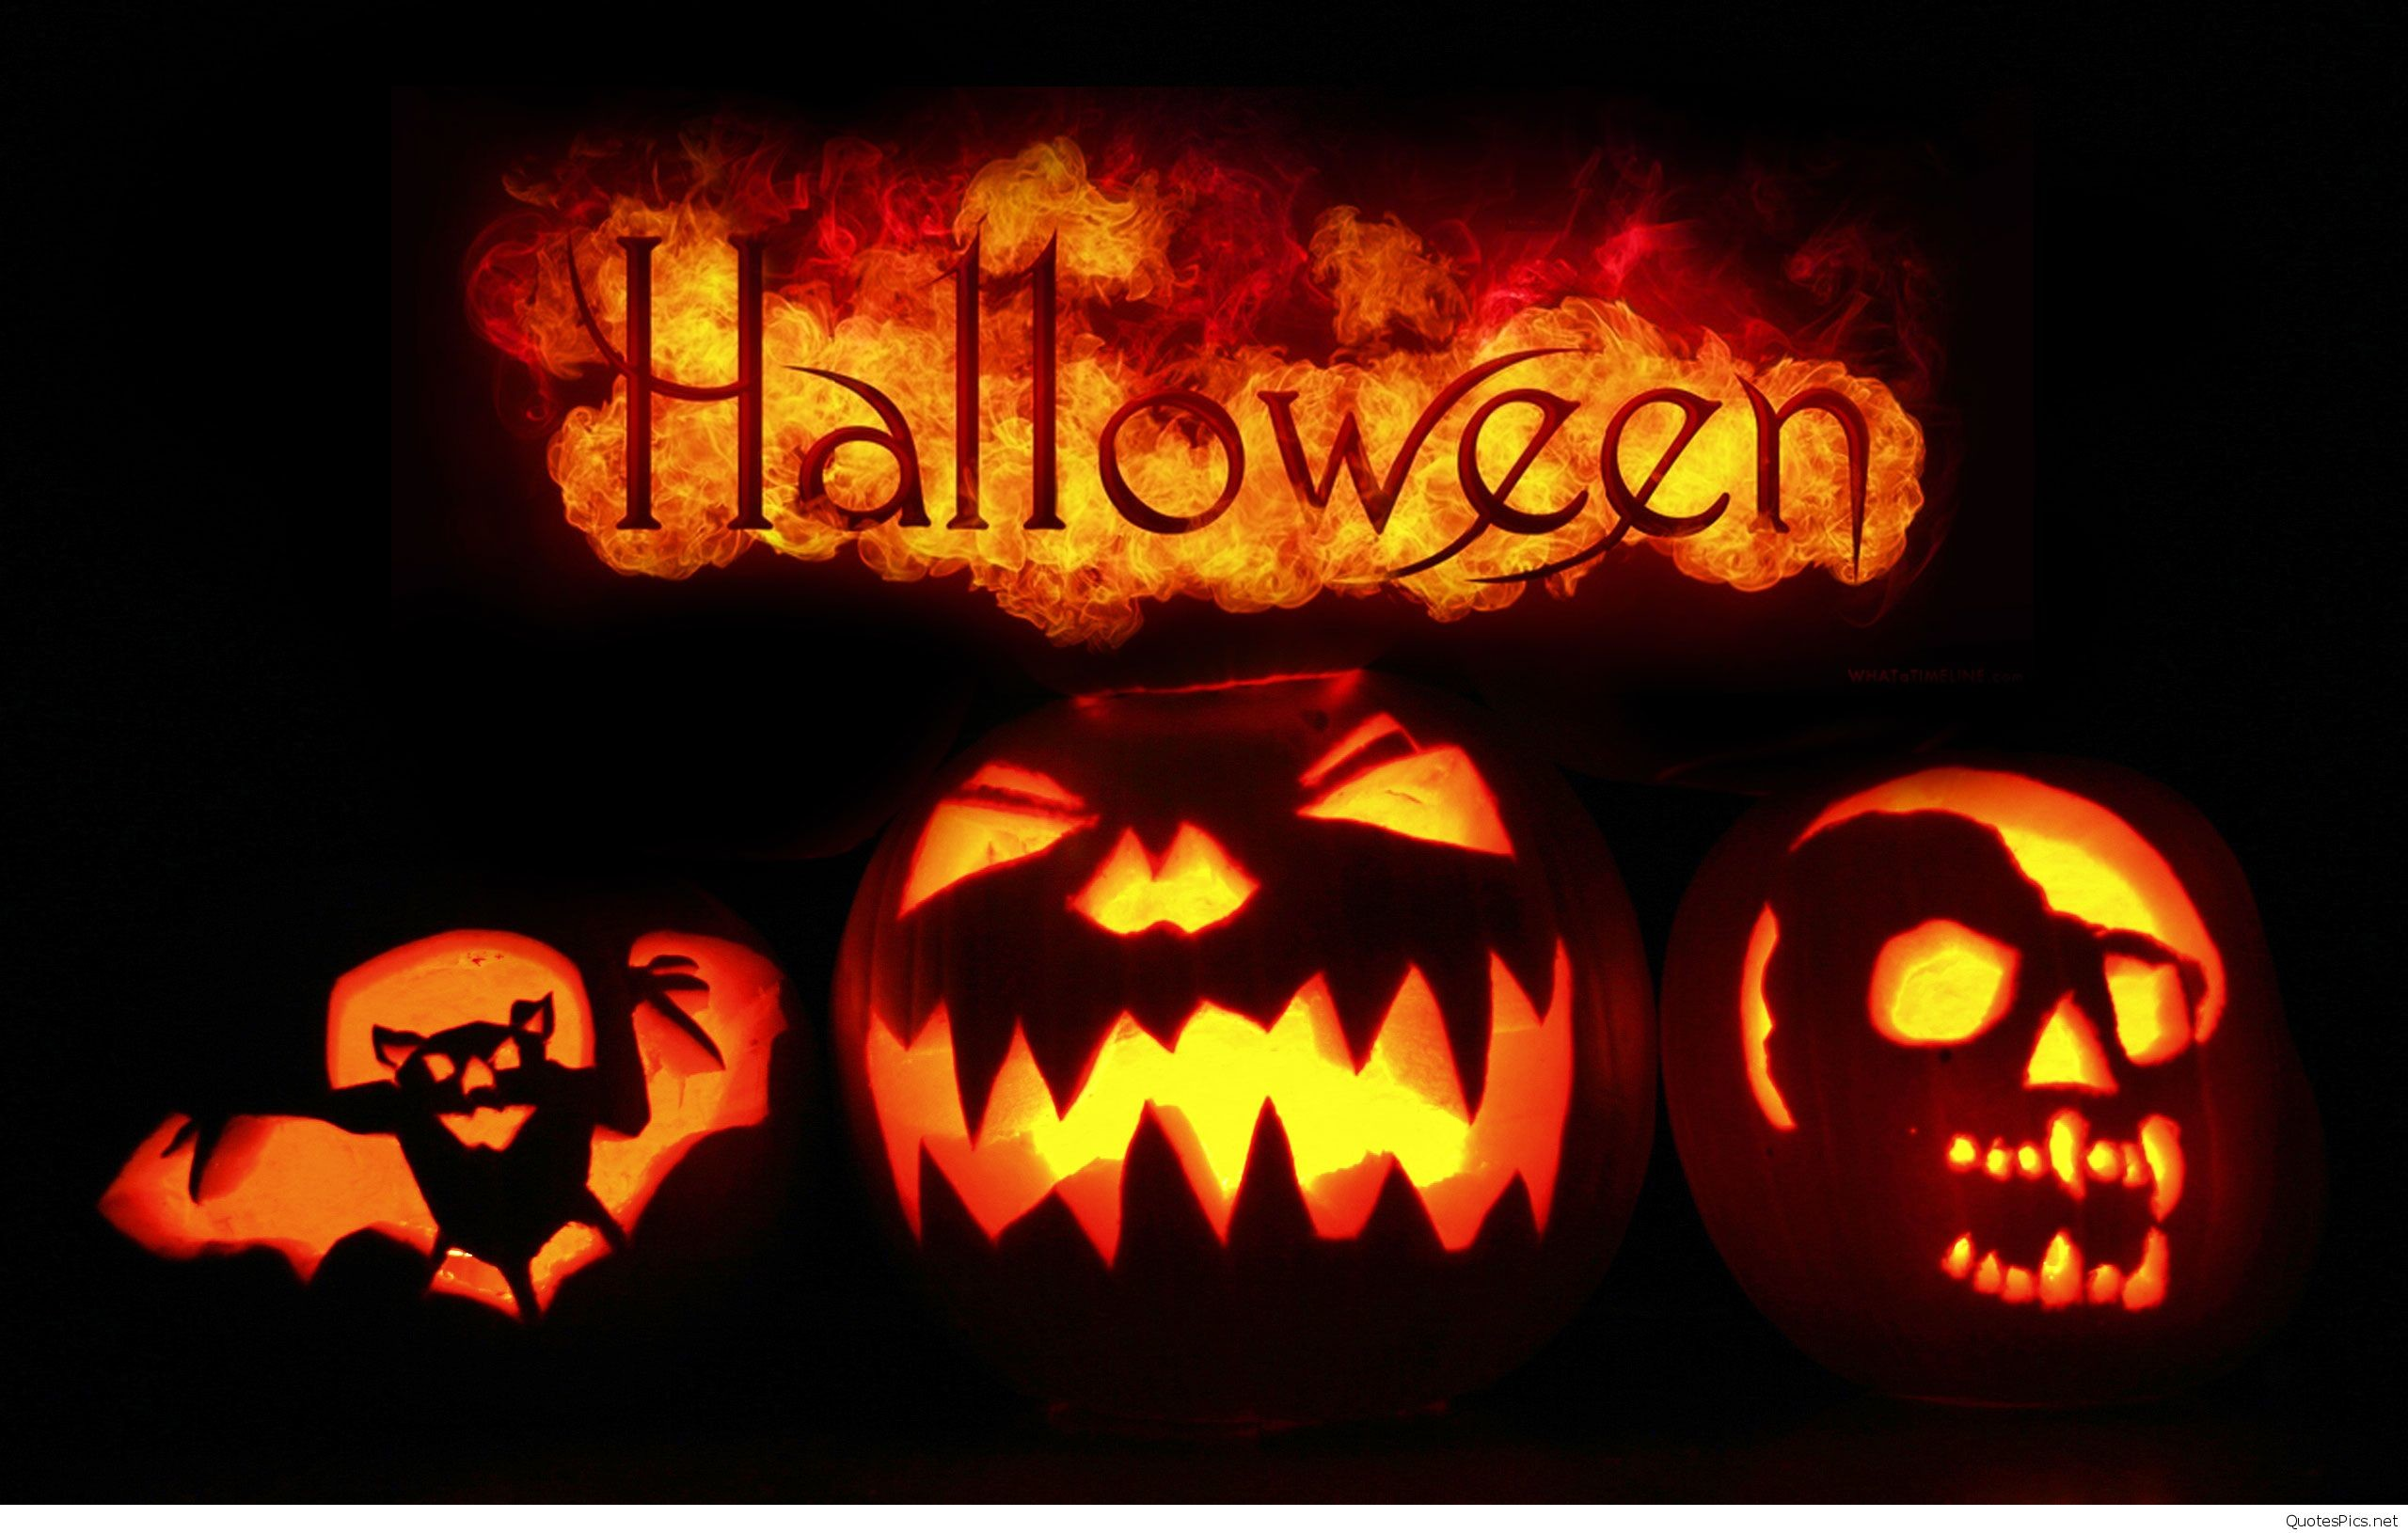 Happy Halloween Wallpaper 79 images 2560x1630